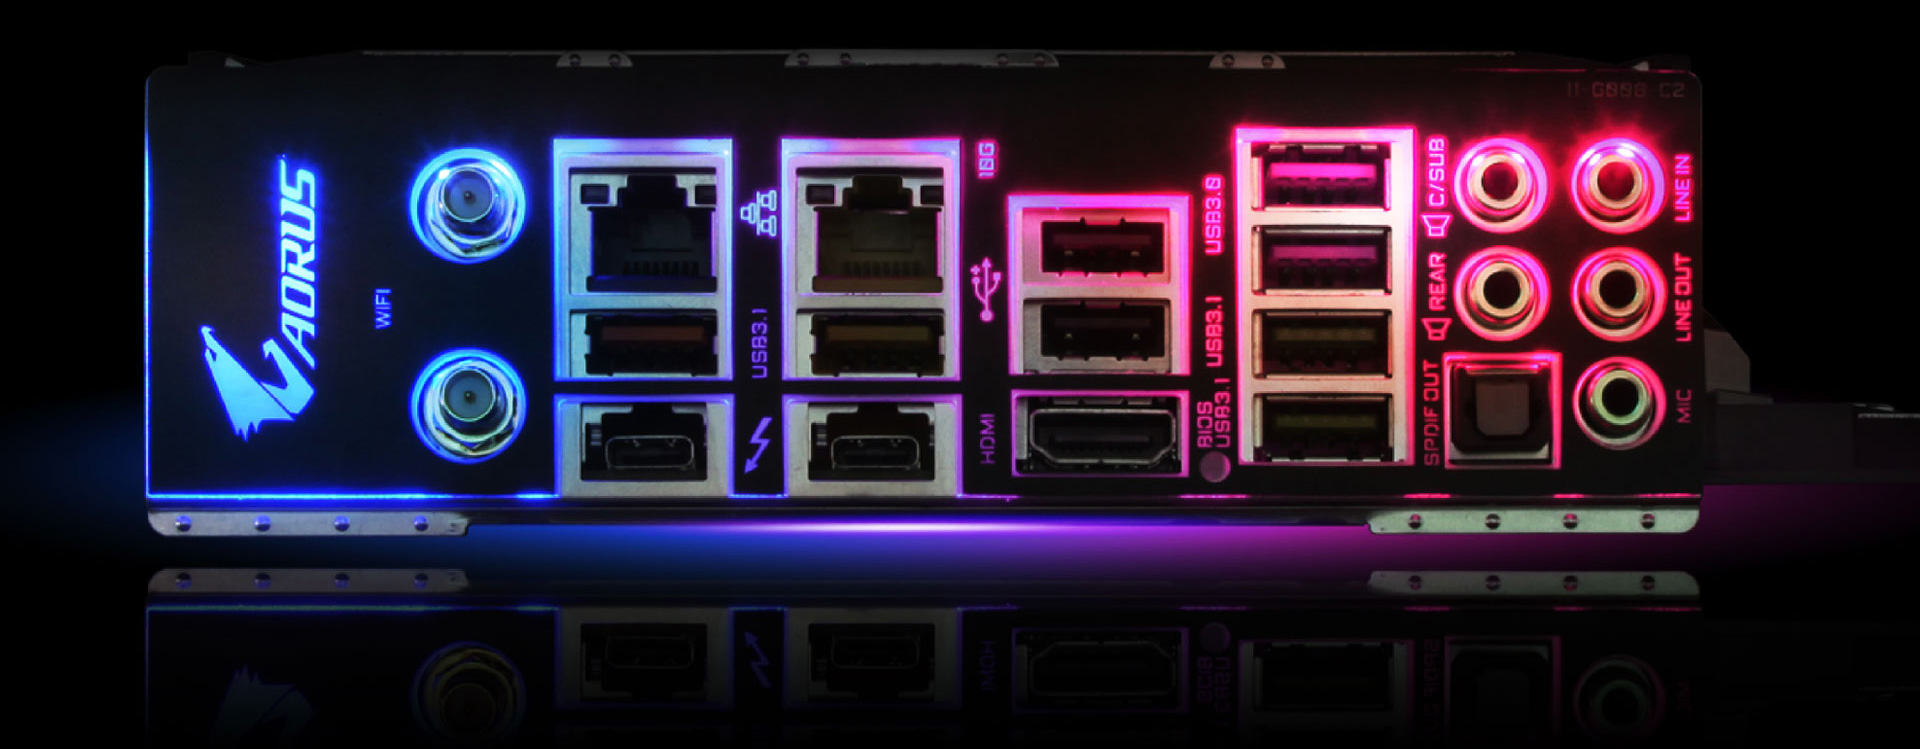 Closeup of the ports on the back of the motherboard, lit up in RGB